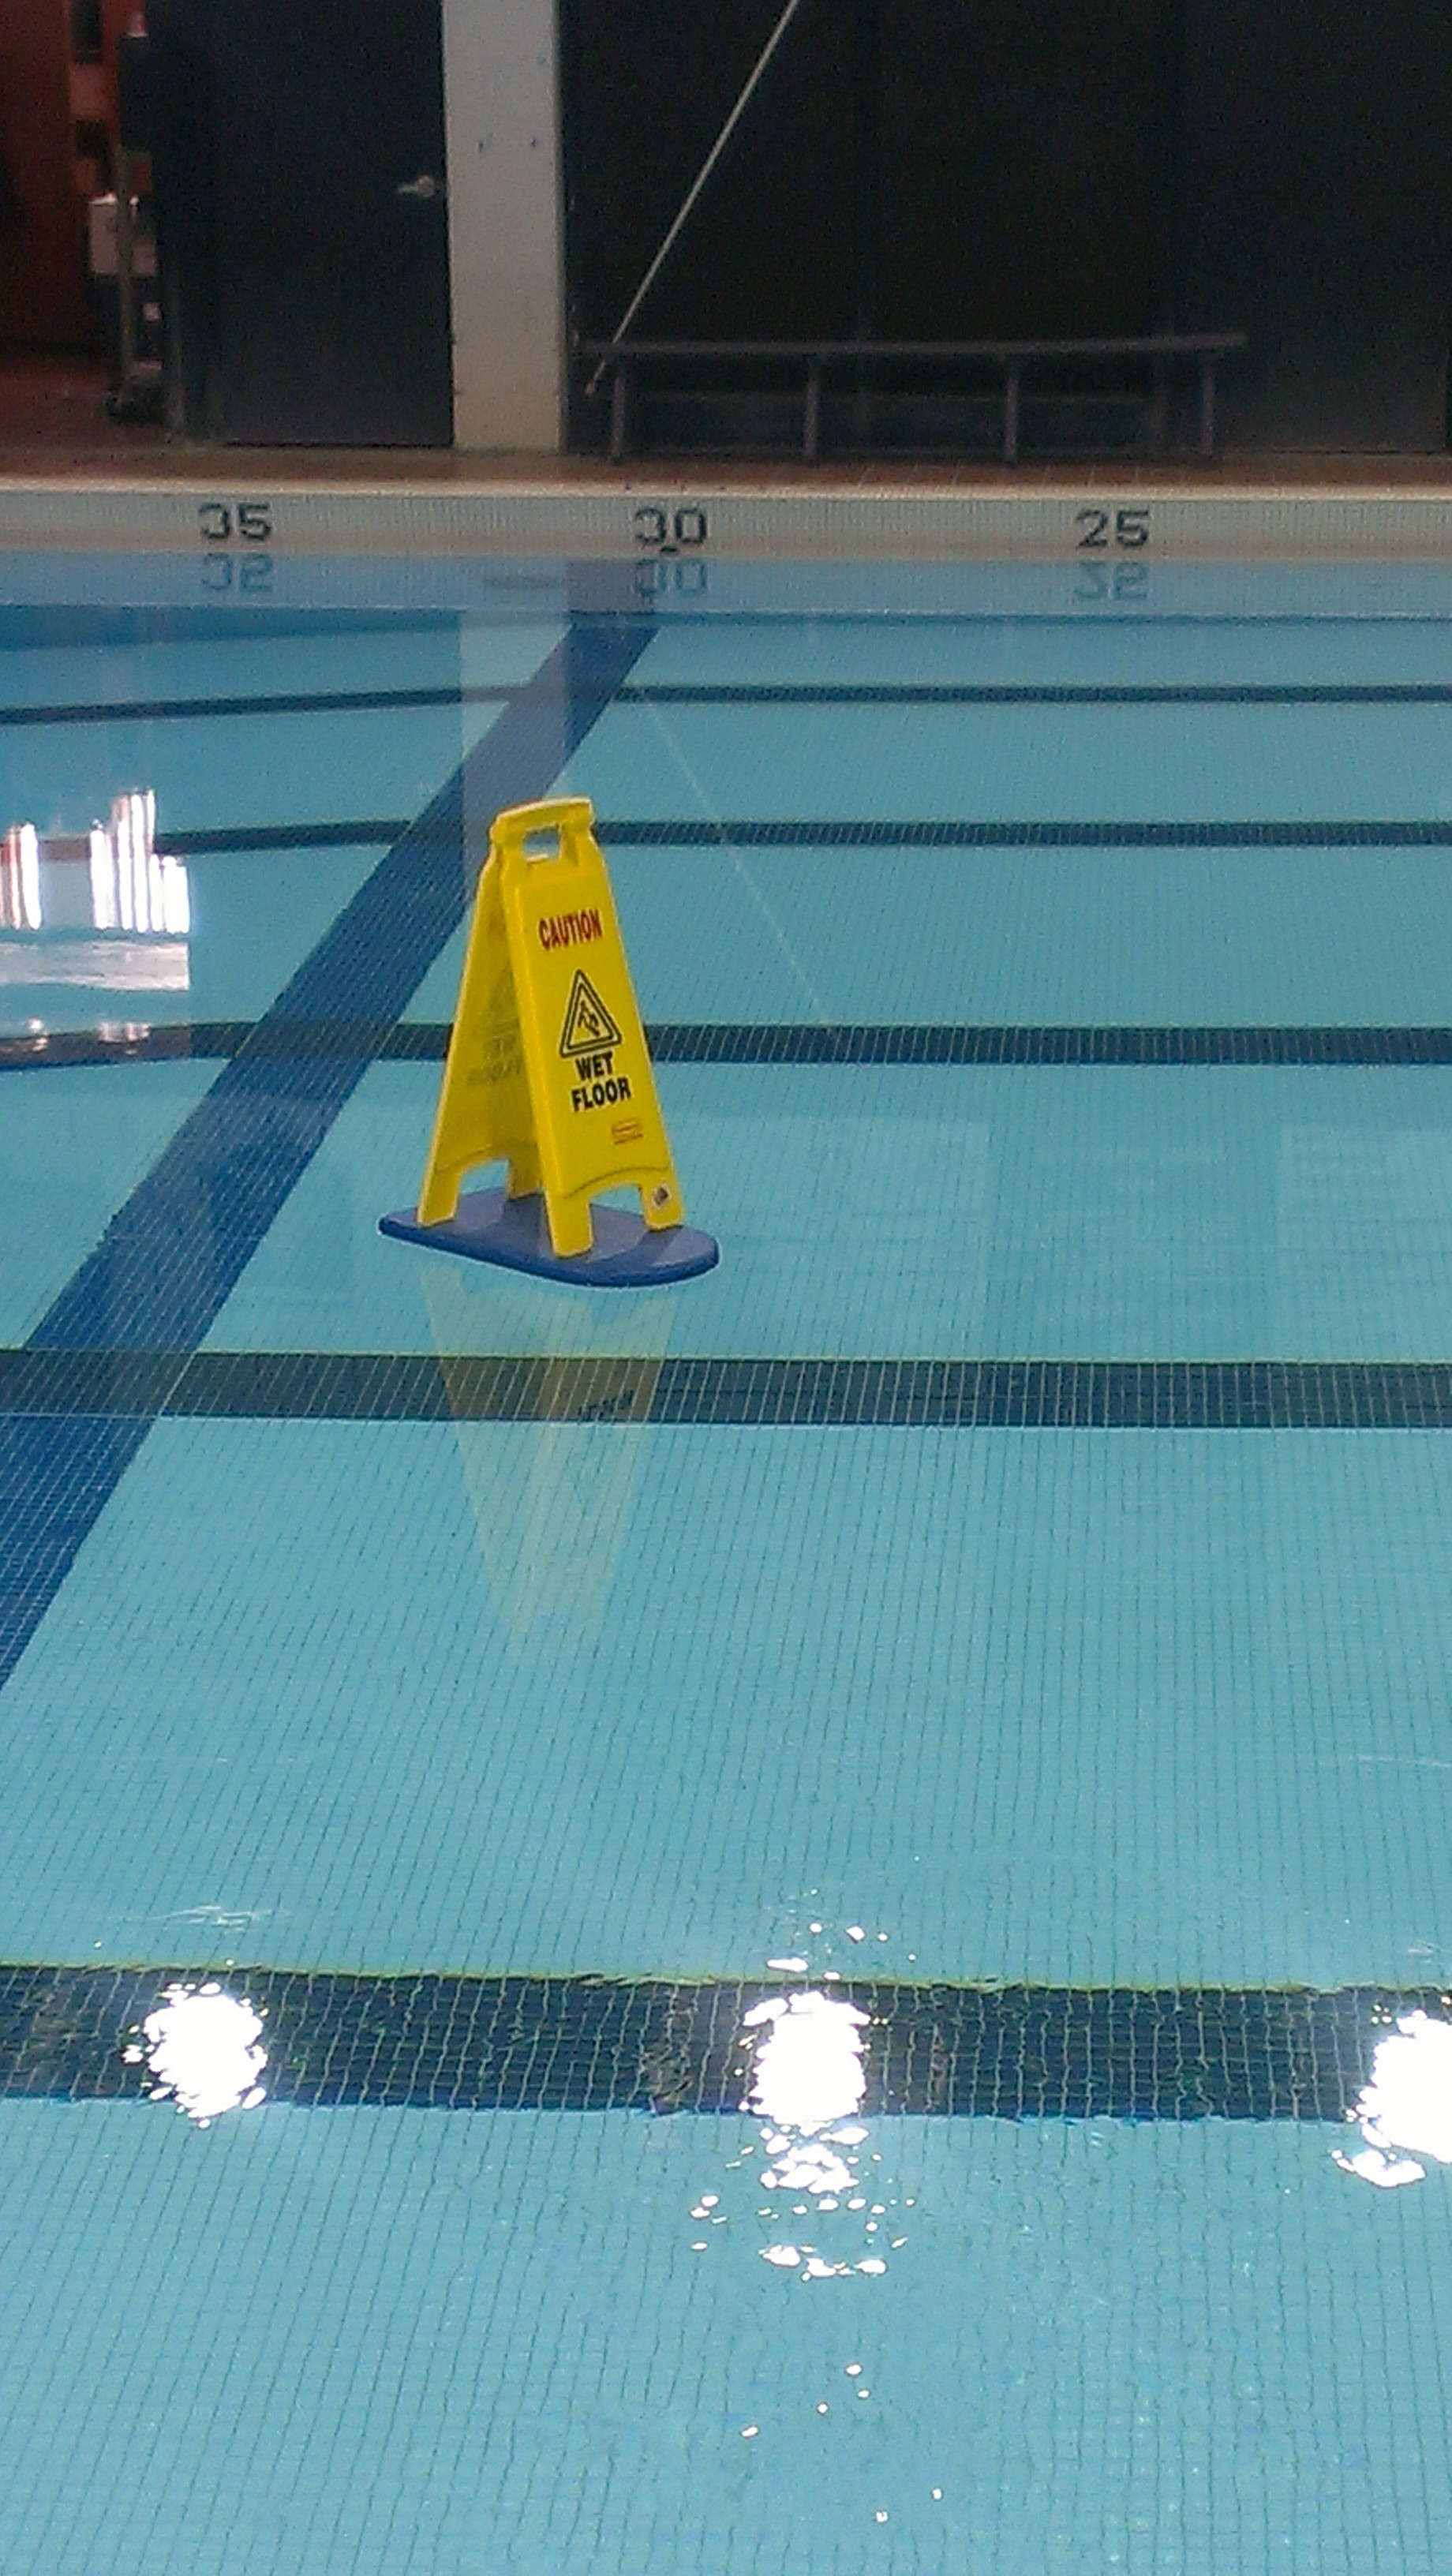 caution, wet floor sign floating on a raft in a swimming pool, lol